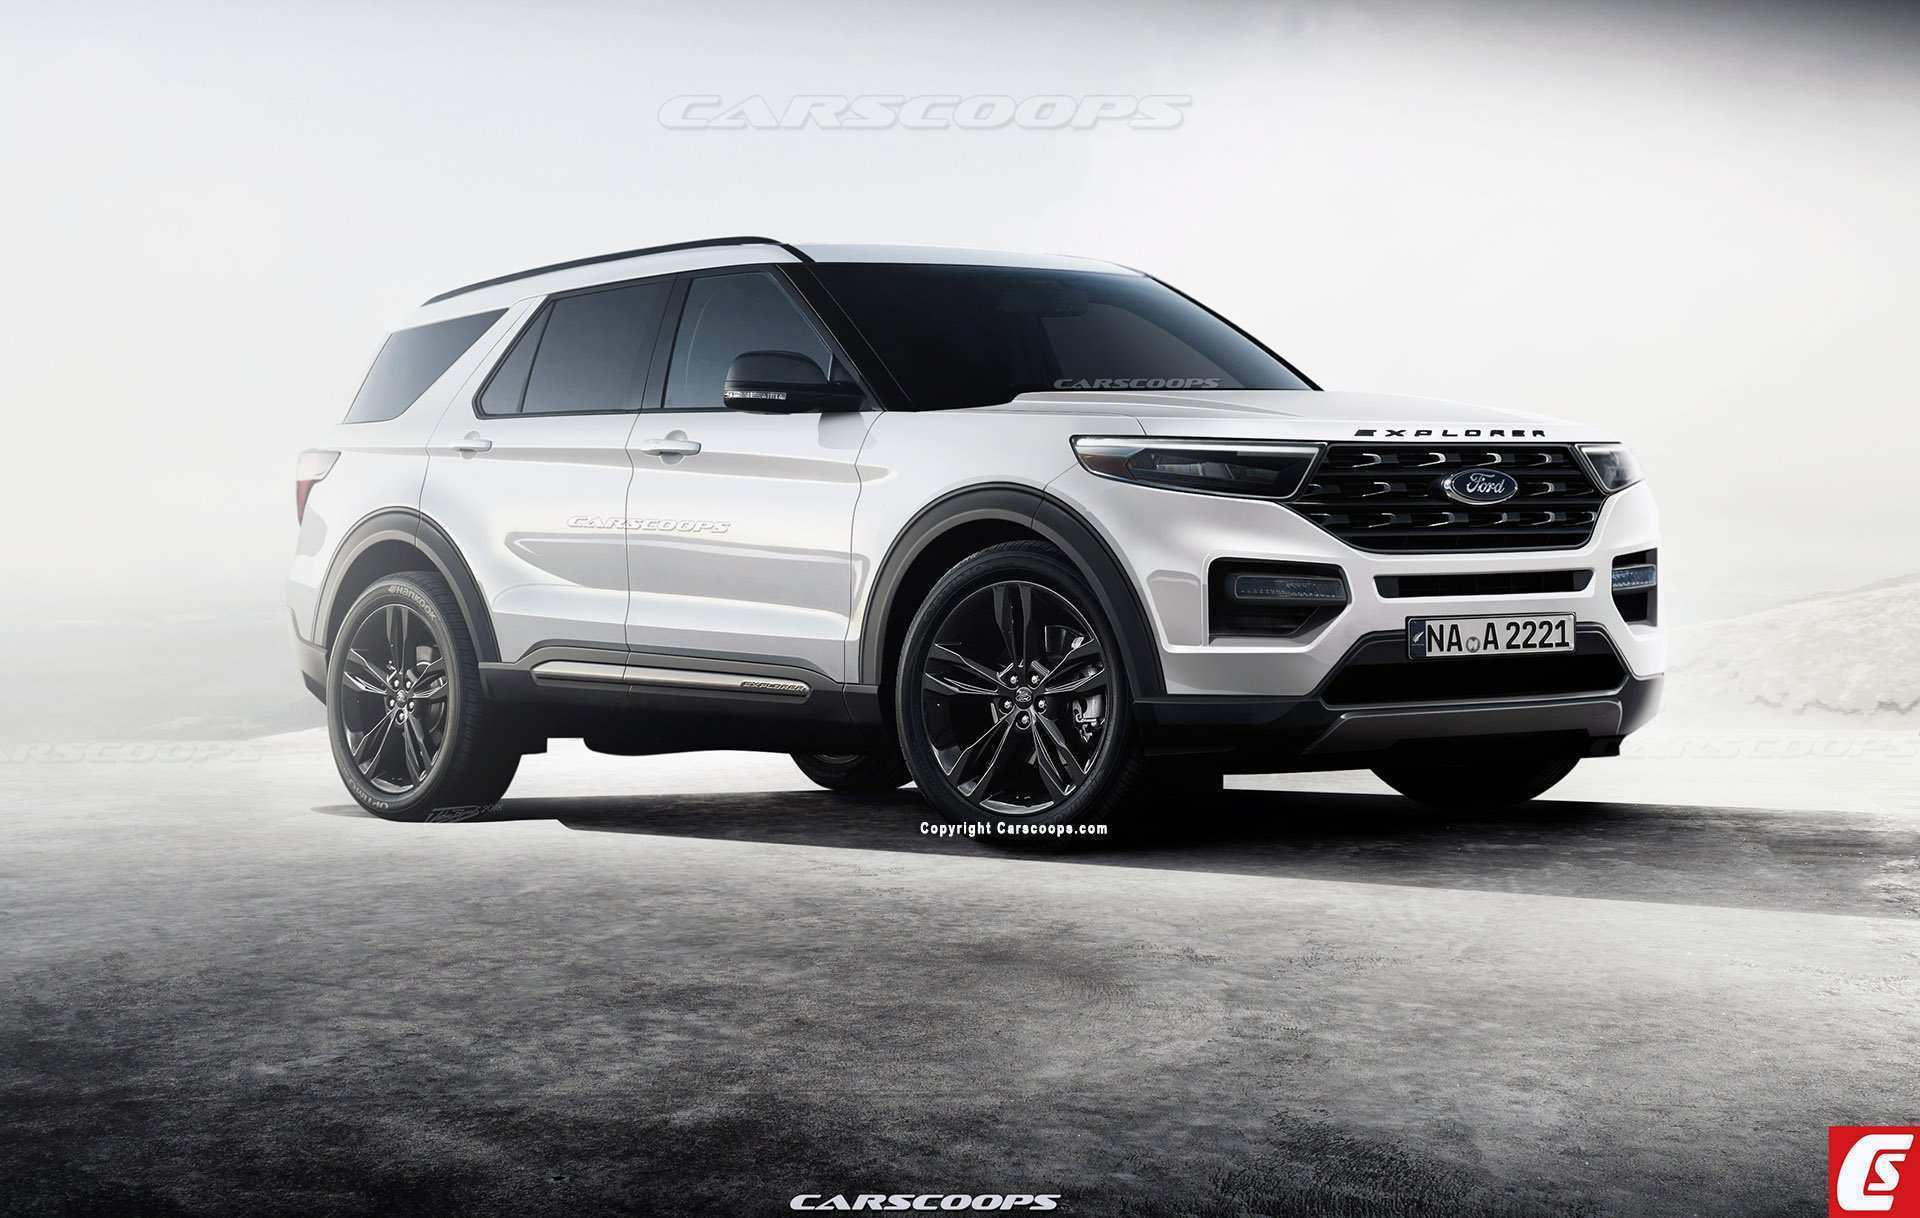 81 The 2020 Ford Explorer Sports Redesign with 2020 Ford Explorer Sports